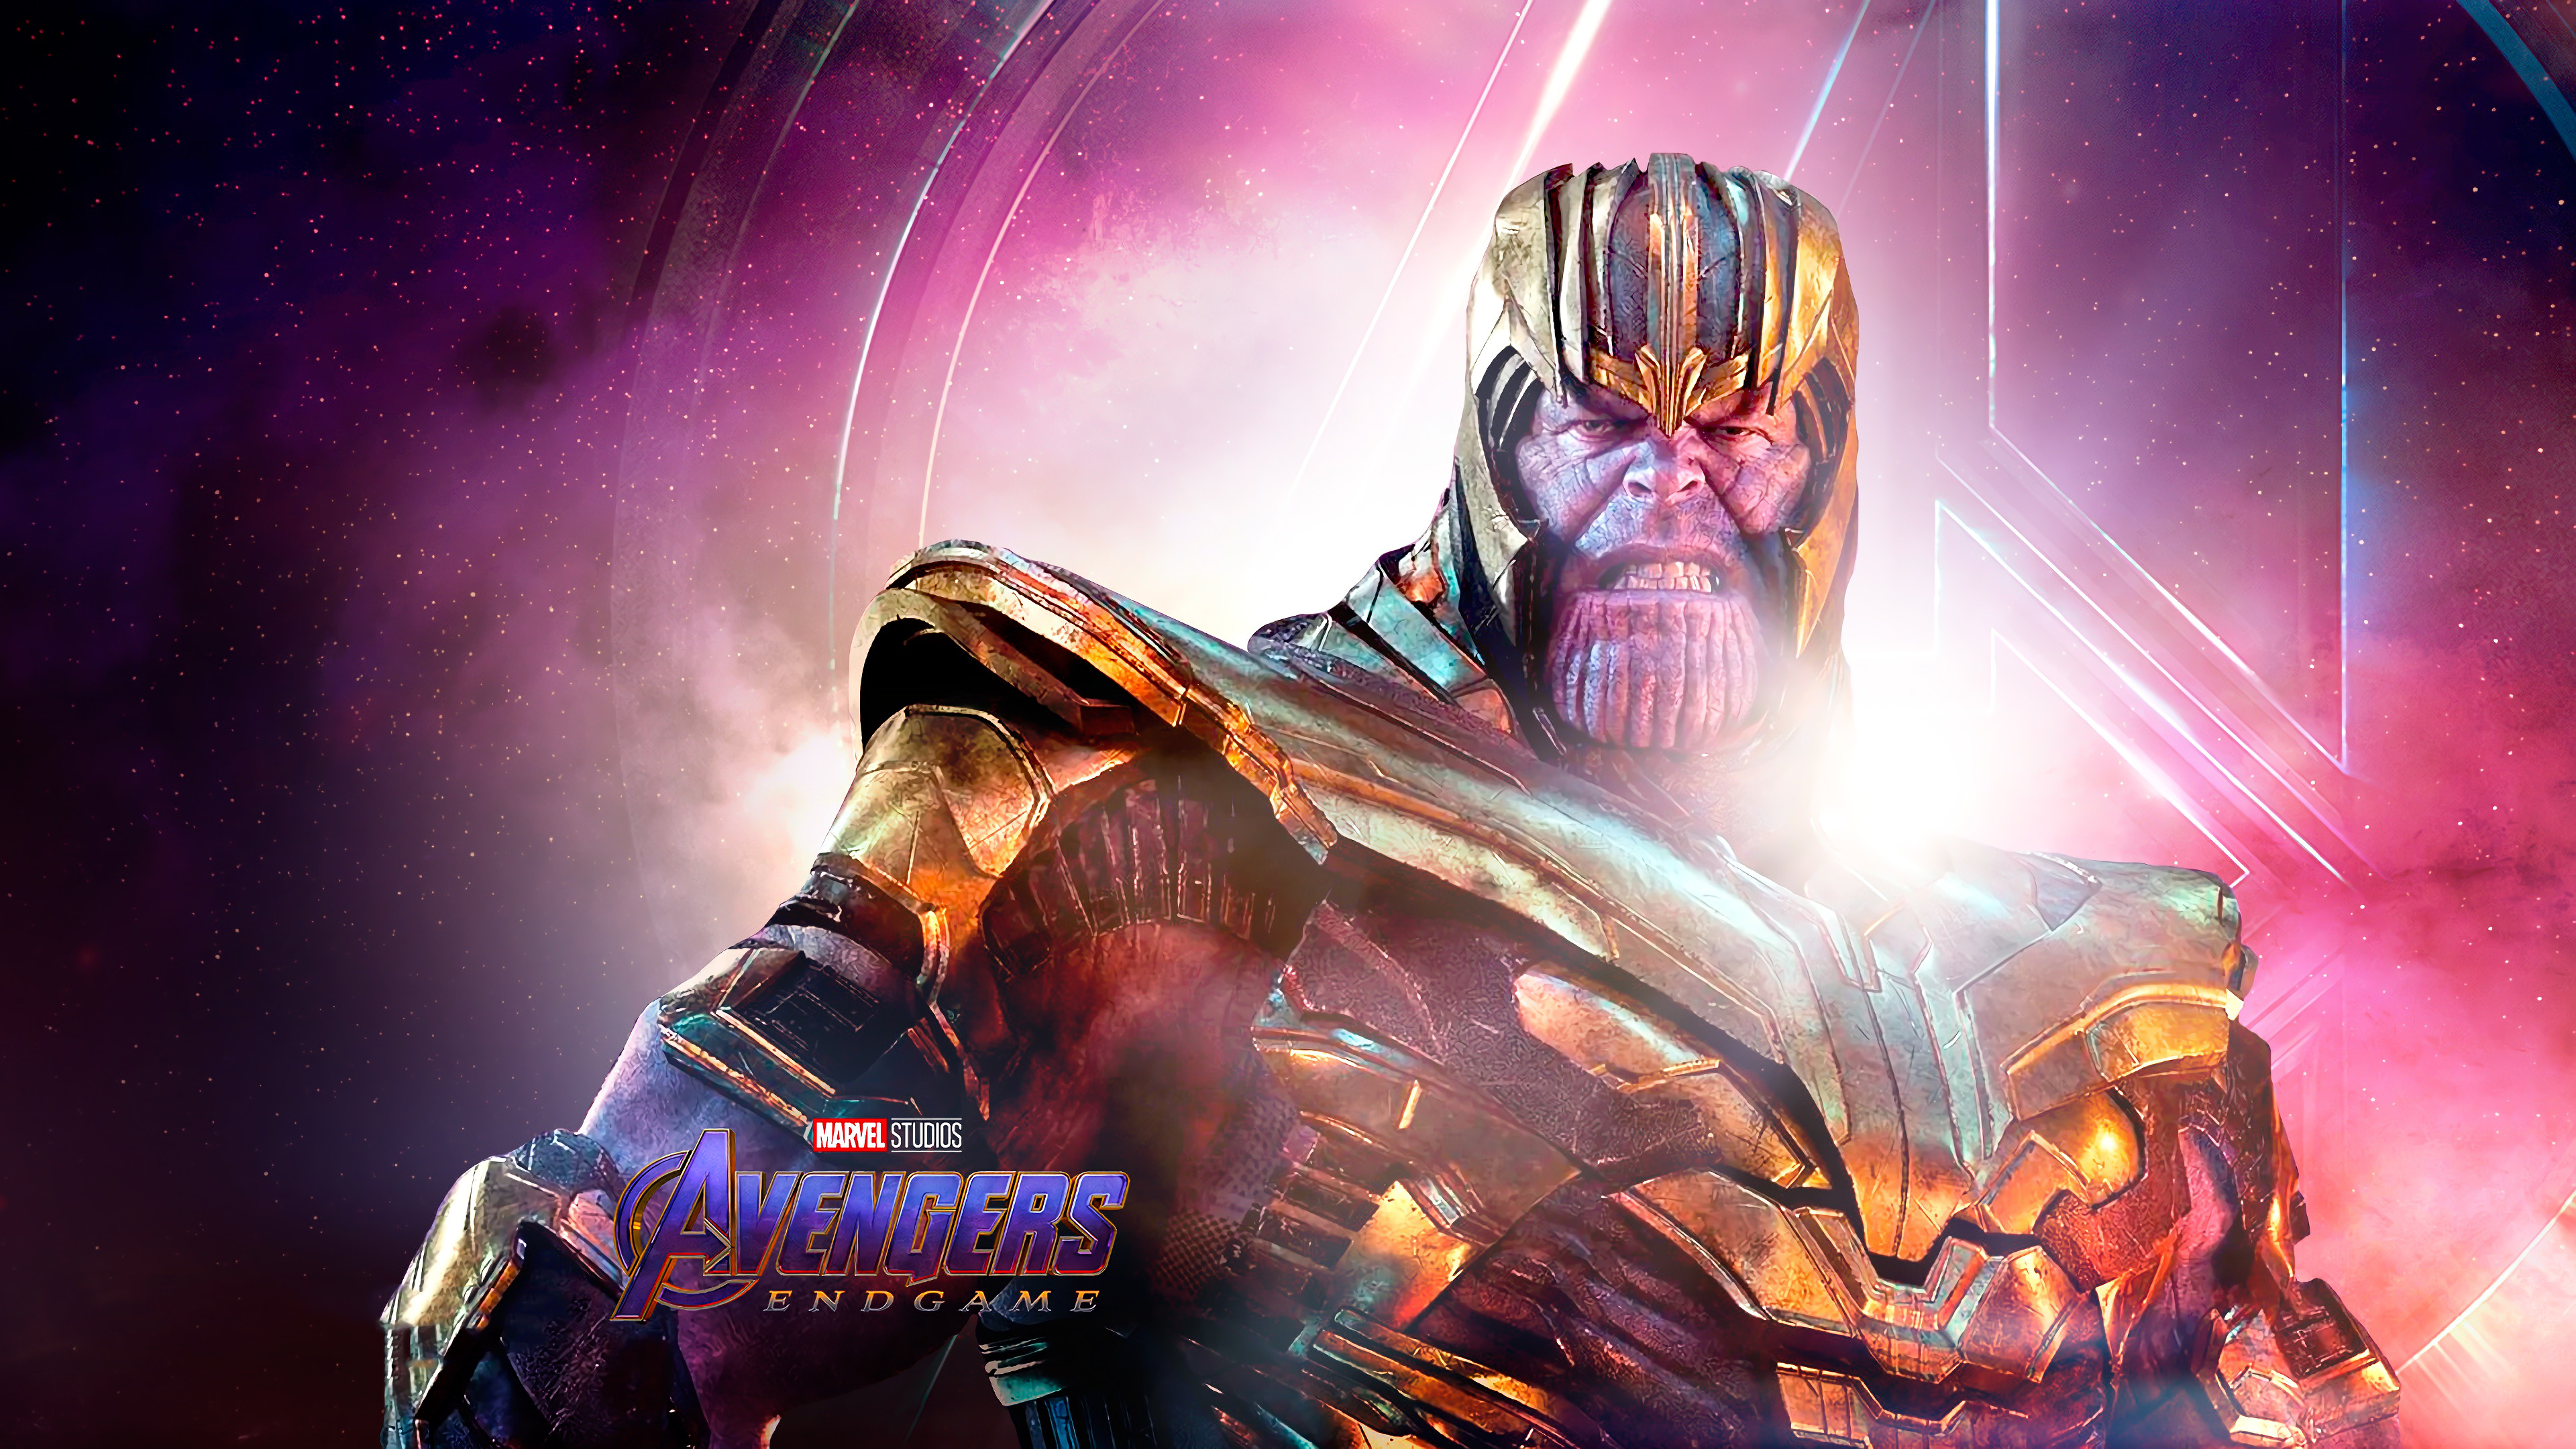 Avengers Endgame Thanos 4k Wallpaper 60